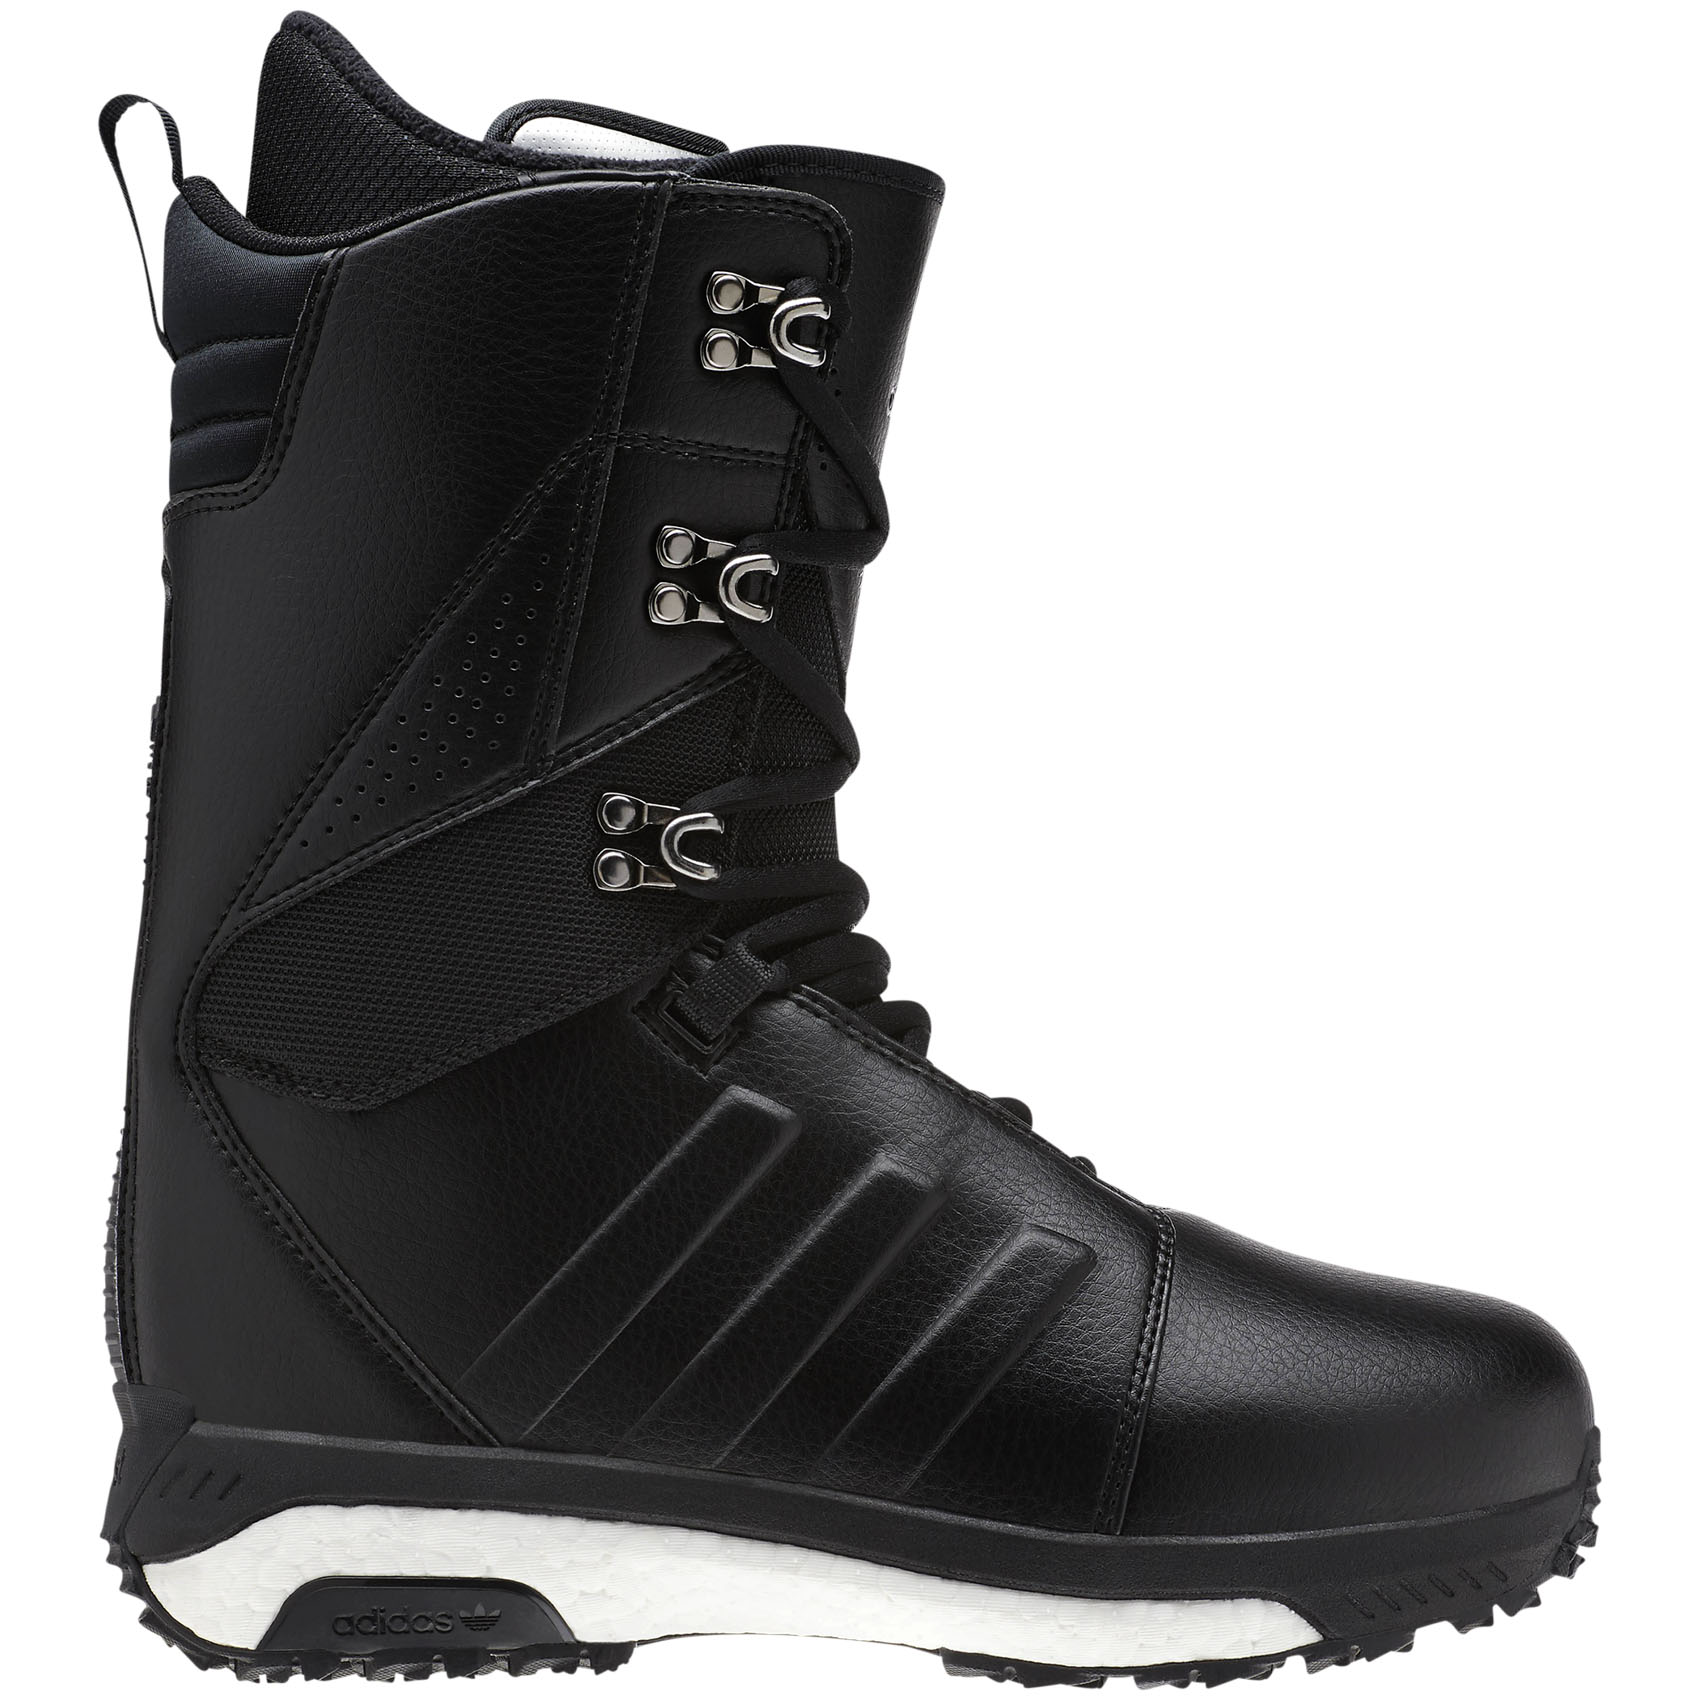 39951634c376 Adidas Tactical Adv Snowboard Boot 2019. 29%